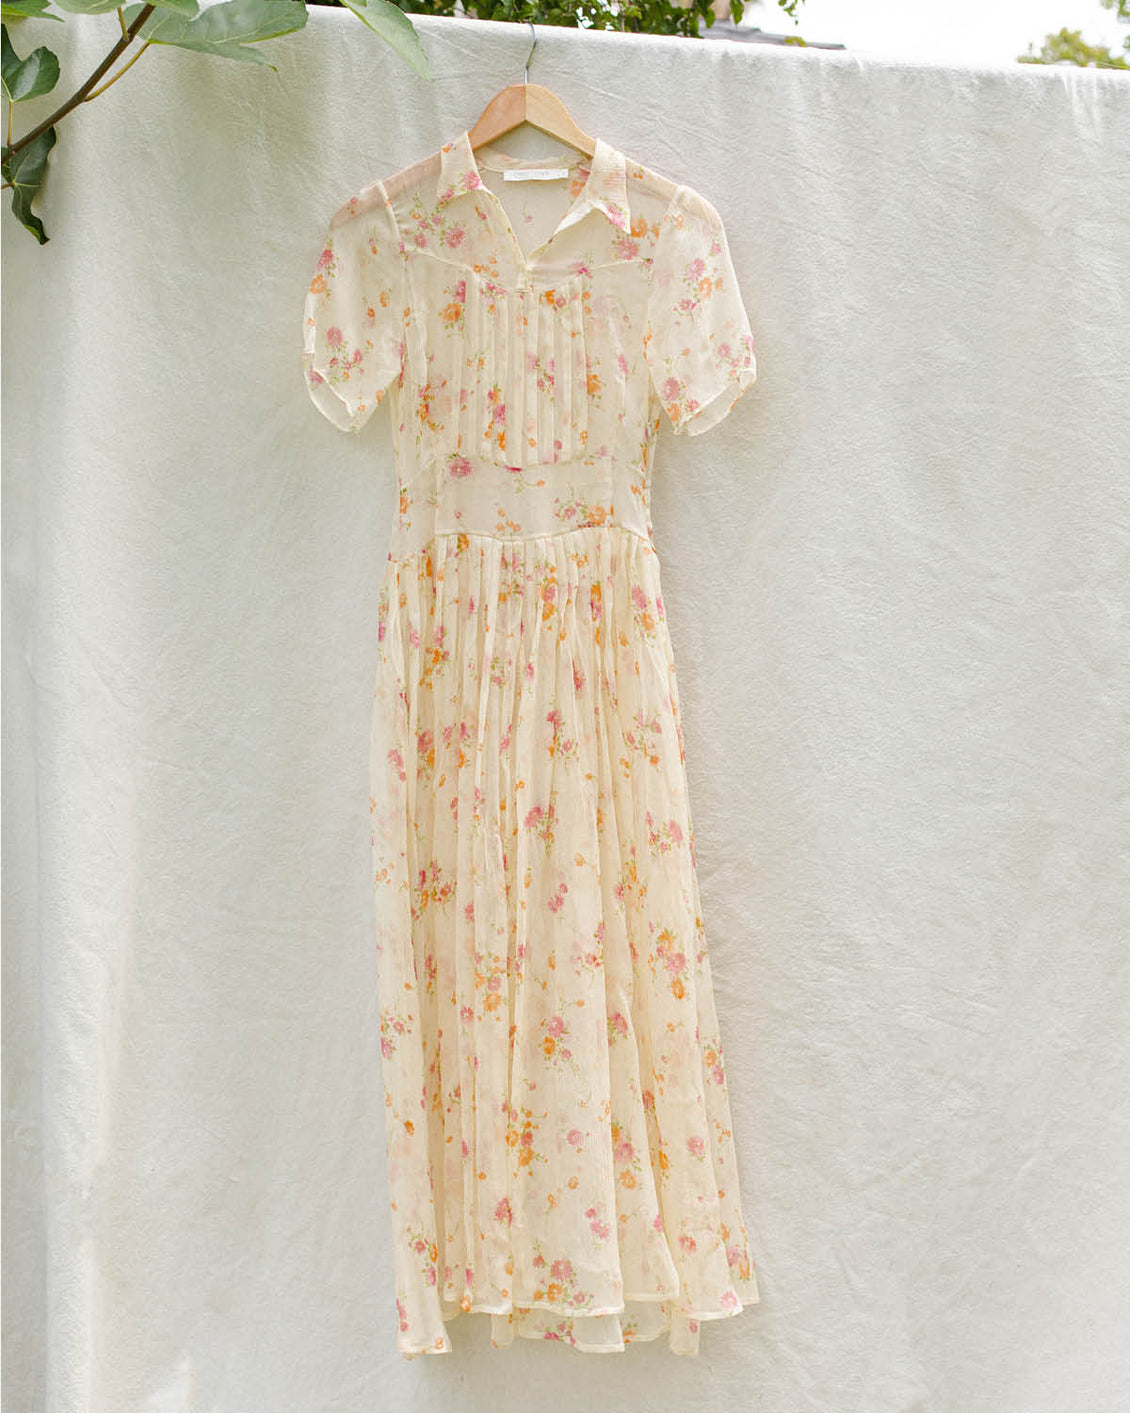 The Winslet Dress | Summer Blossom